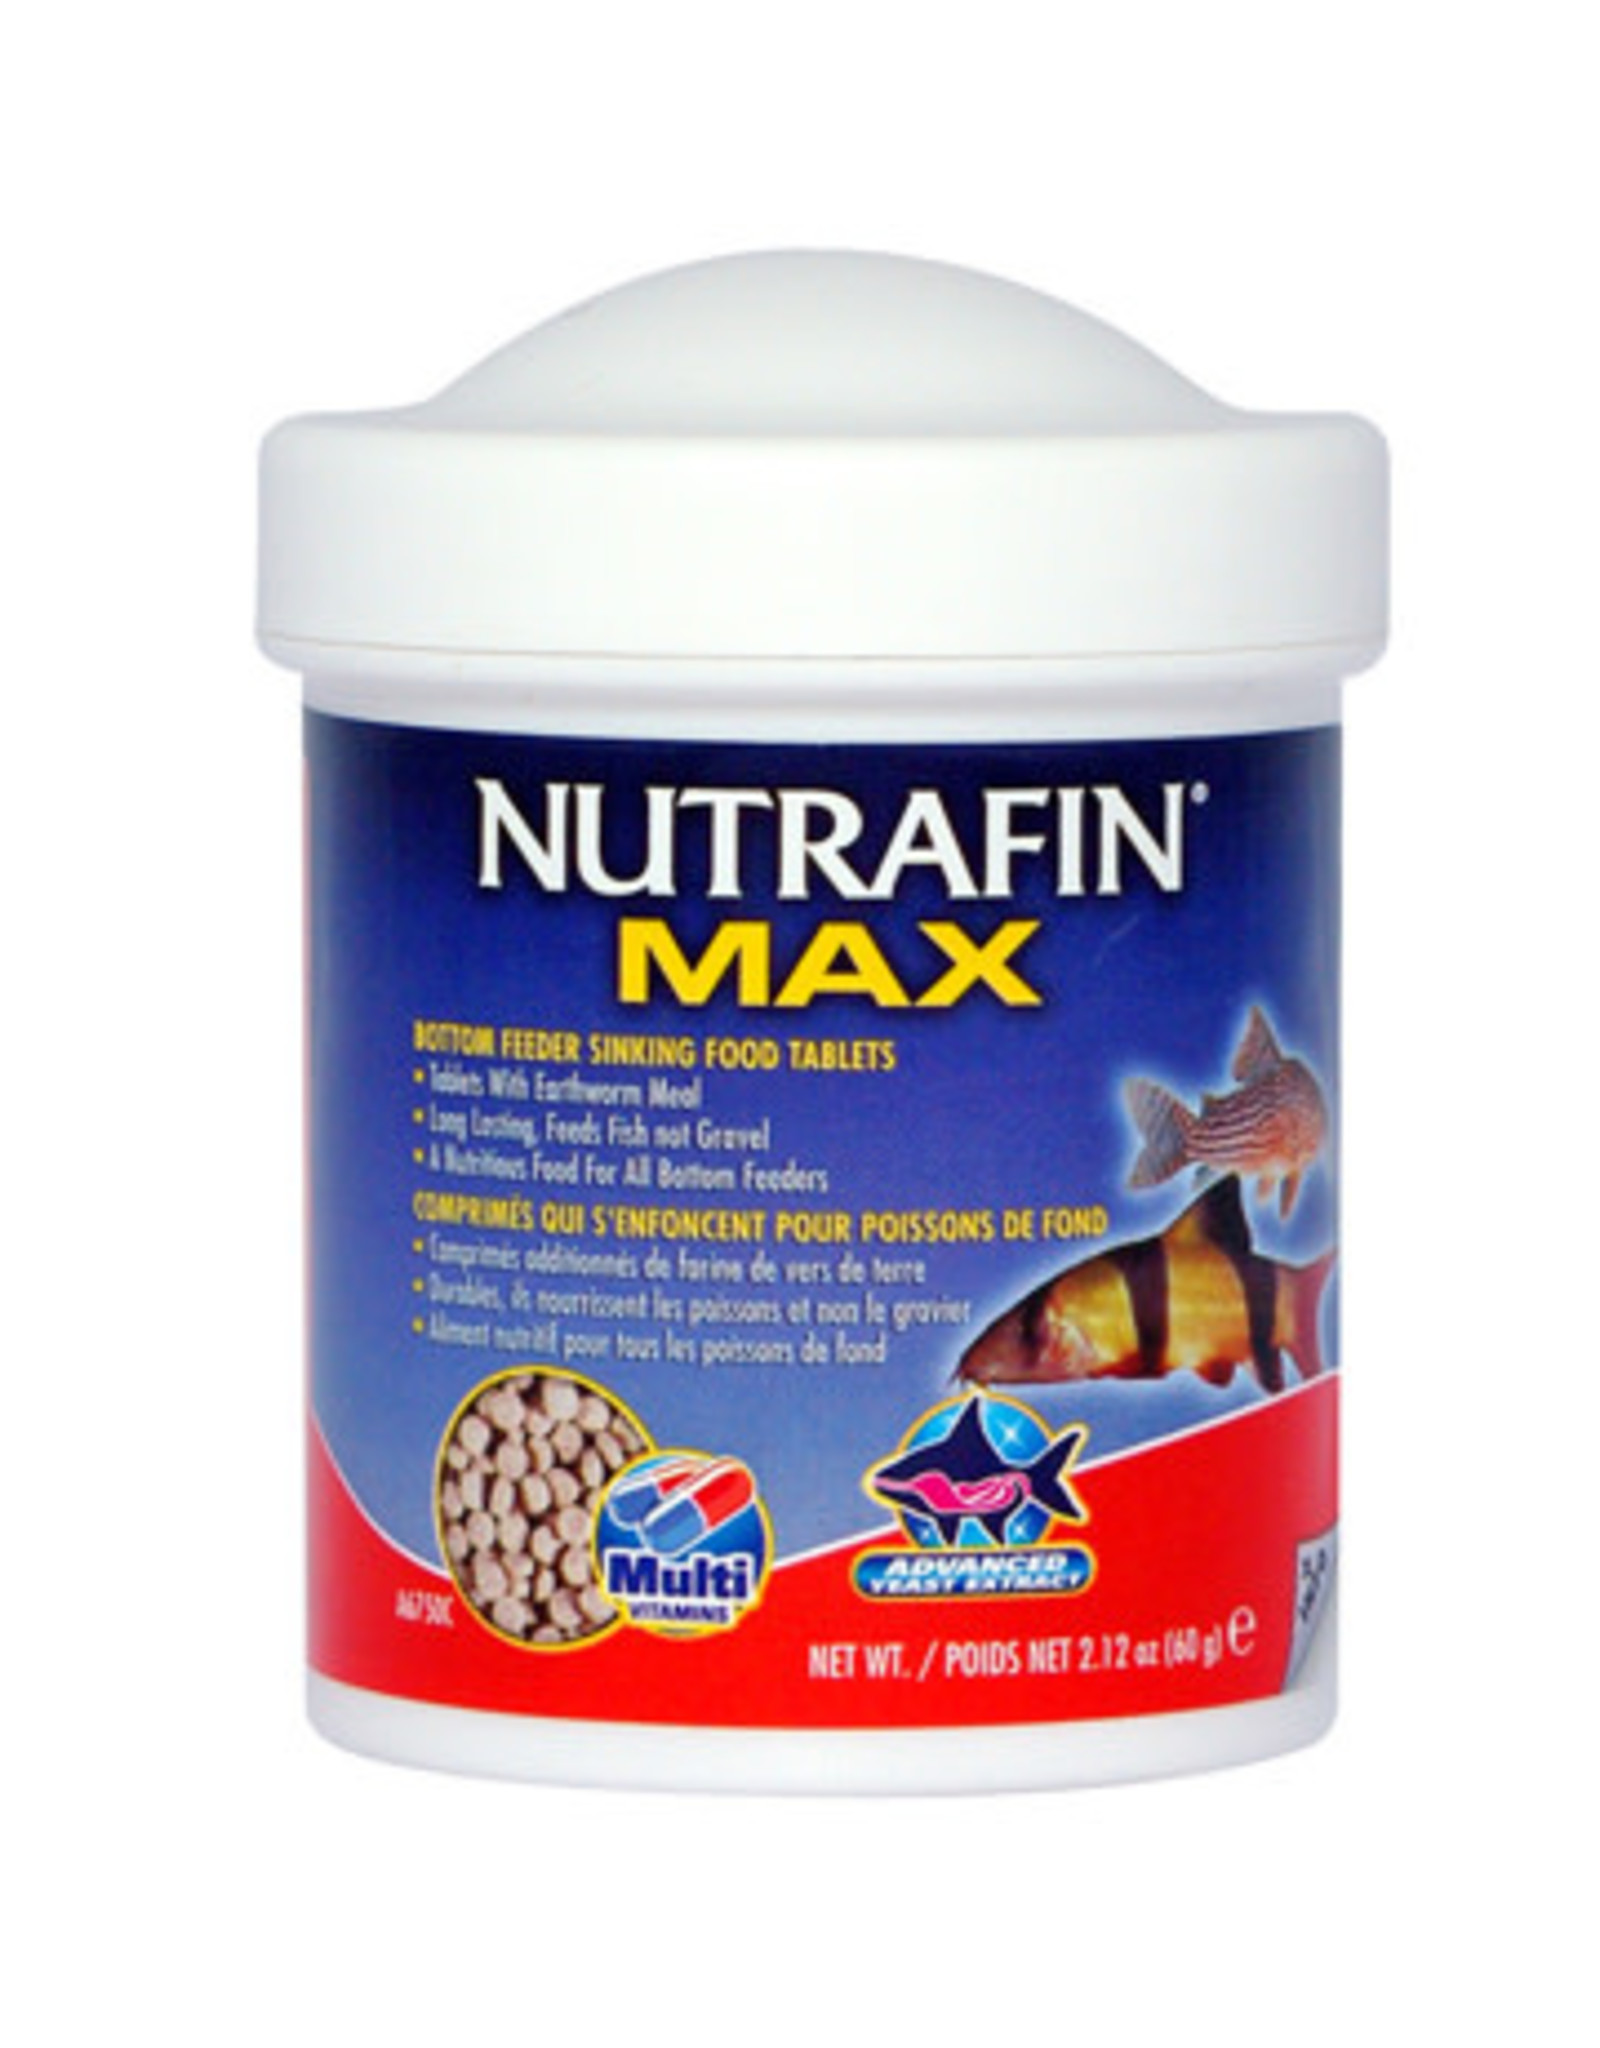 Nutrafin Nutrafin Max Bottom Feeder Sinking Food Tablets, 60 g (2.12 oz)